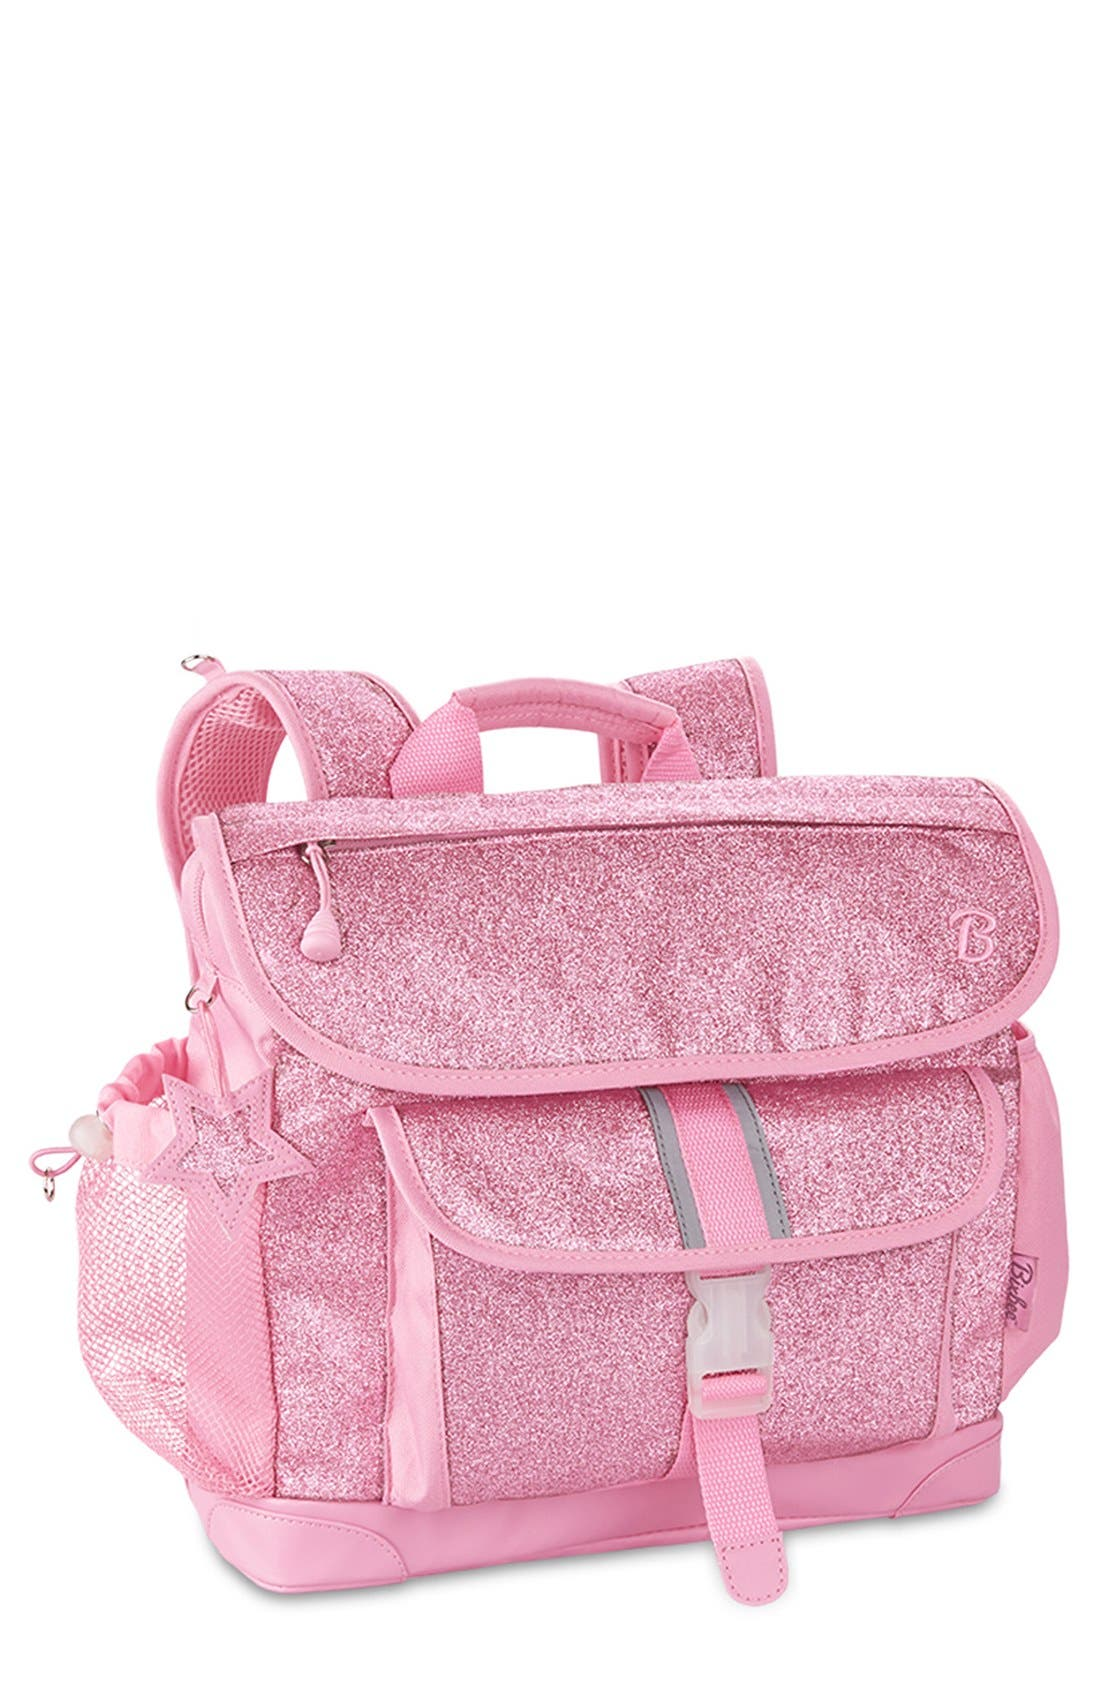 Main Image - Bixbee 'Large Sparkalicious' Backpack (Kids)